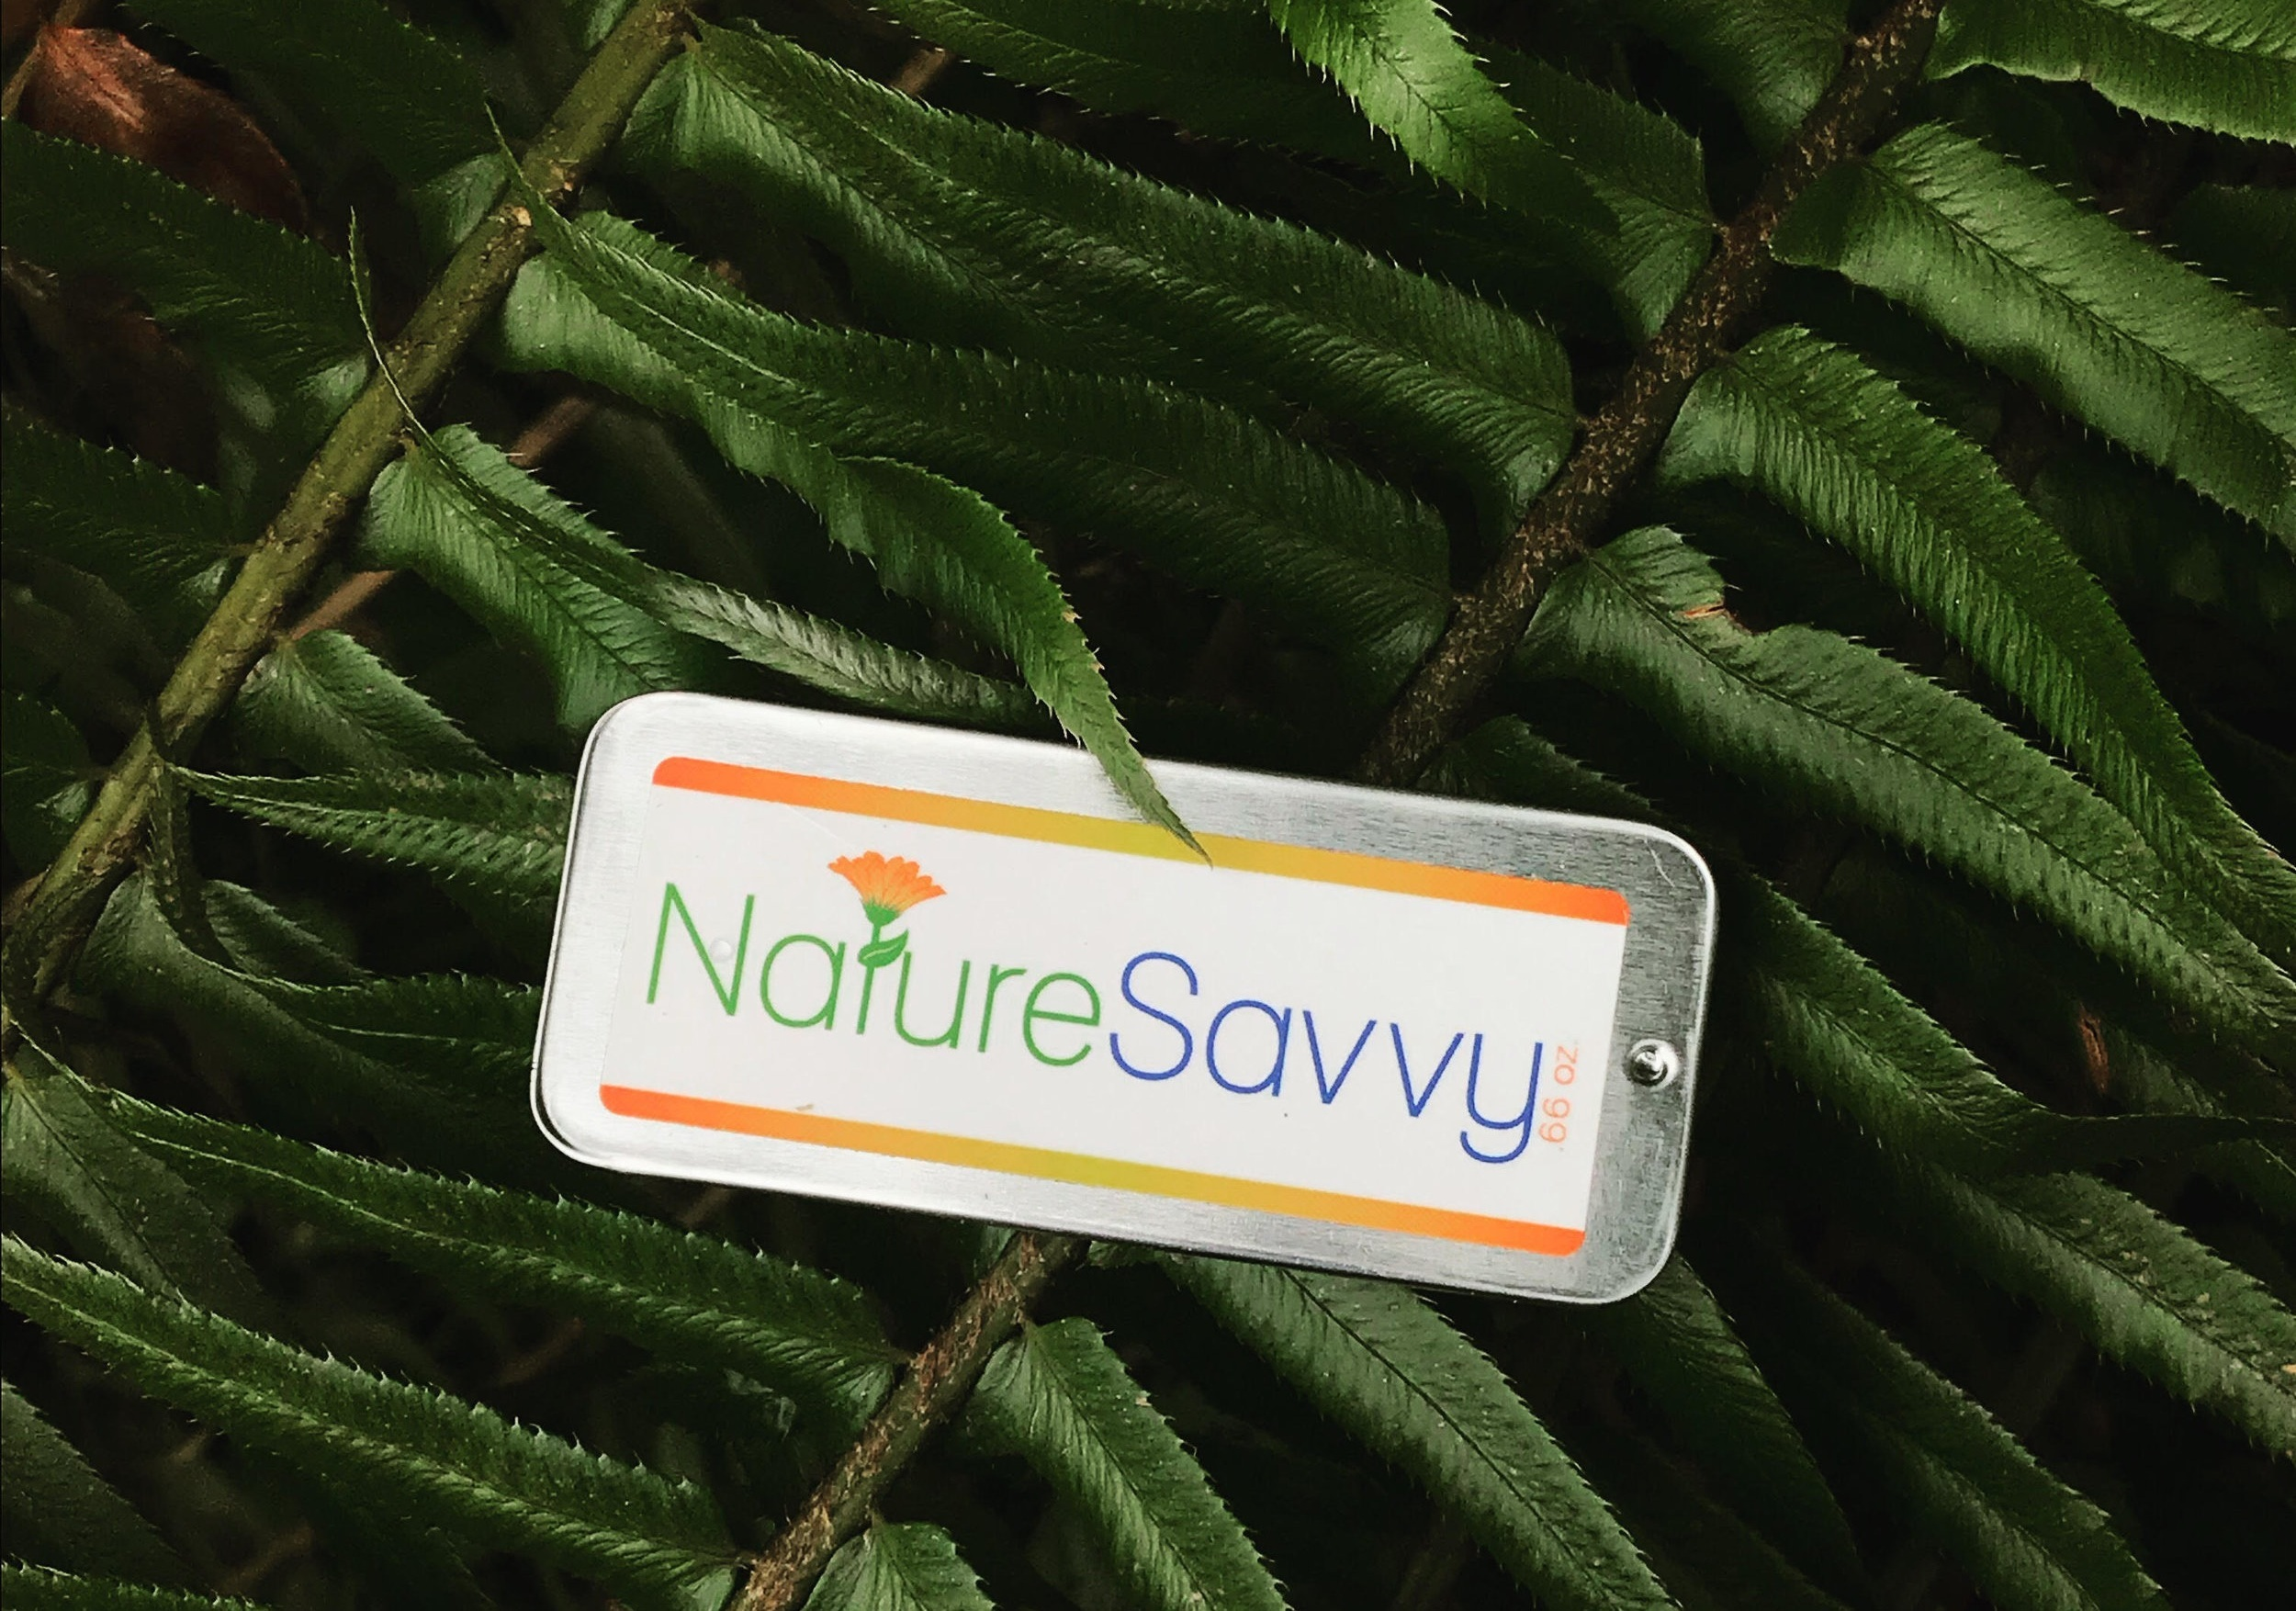 NatureSavvy+Fern+Label.jpg